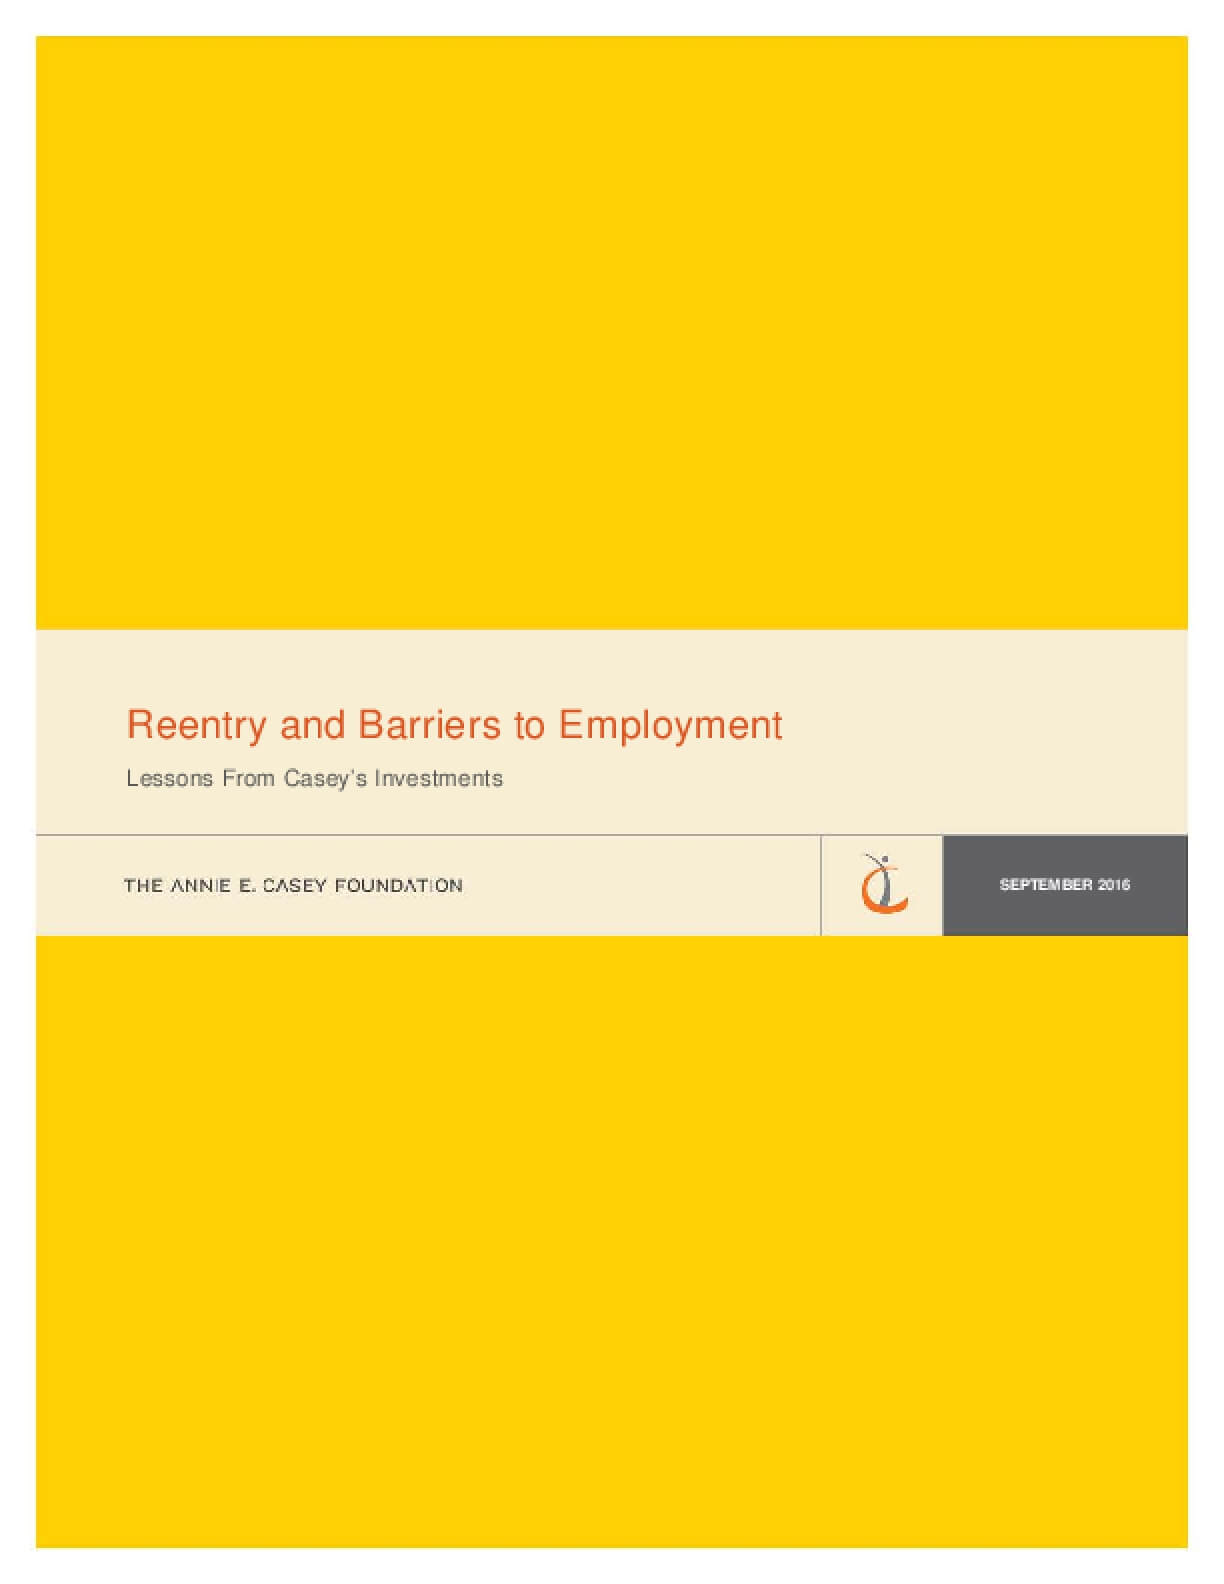 Reentry and Barriers to Employment: Lessons From Casey's Investments